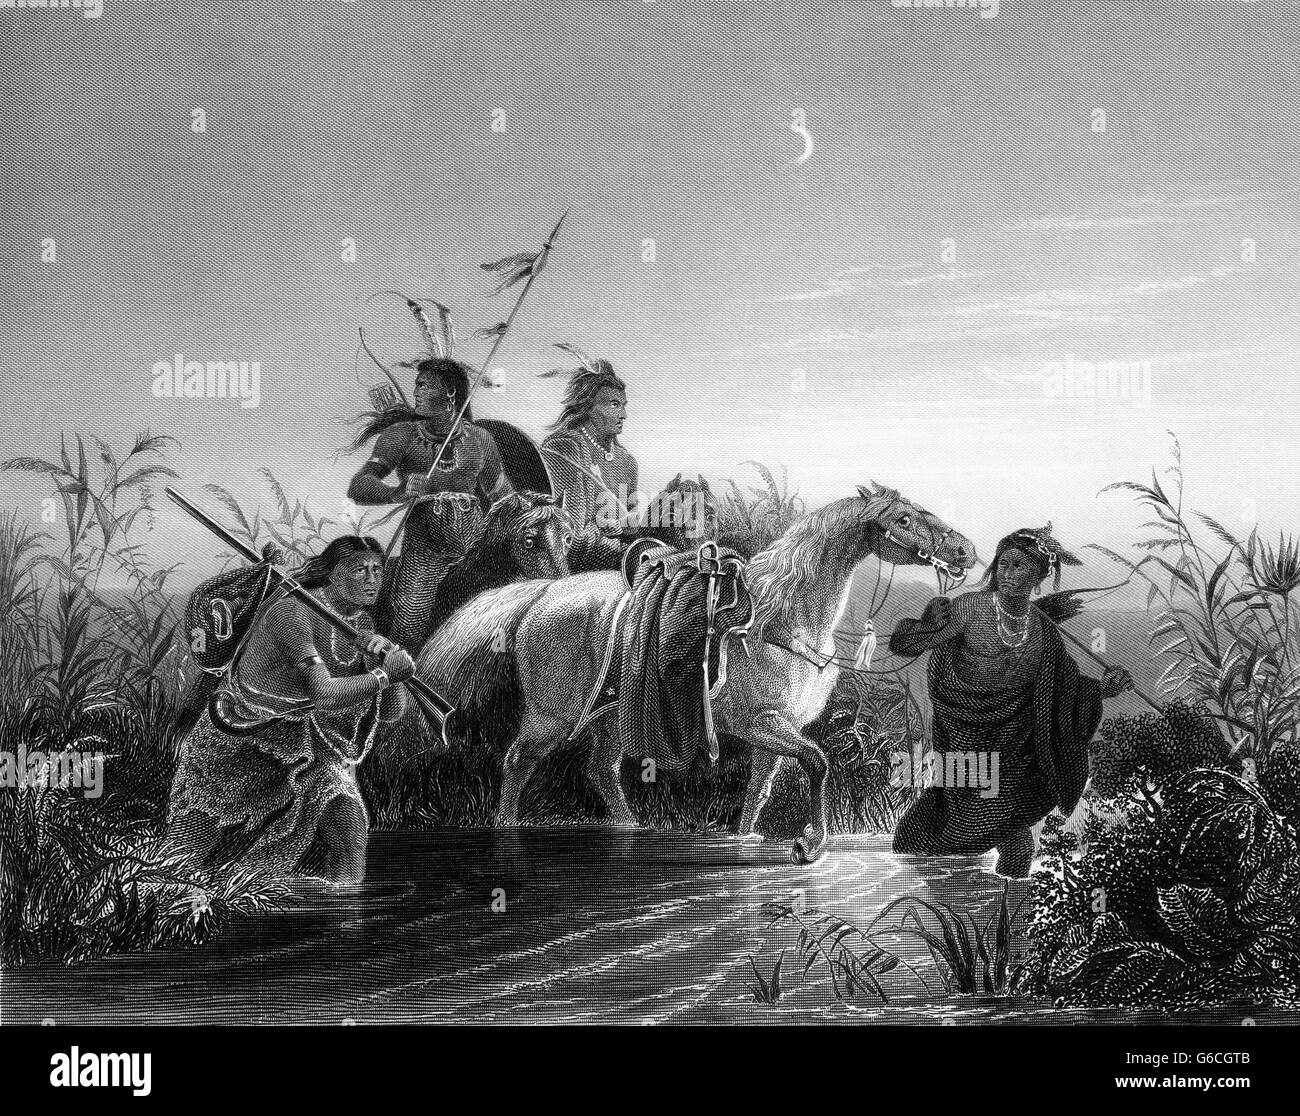 1850s ENGRAVING OF KARL WIMAR PAINTING THE CAPTIVE CHARGER NATIVE AMERICANS LEADING AWAY A CAPTURED CAVALRY HORSE - Stock Image